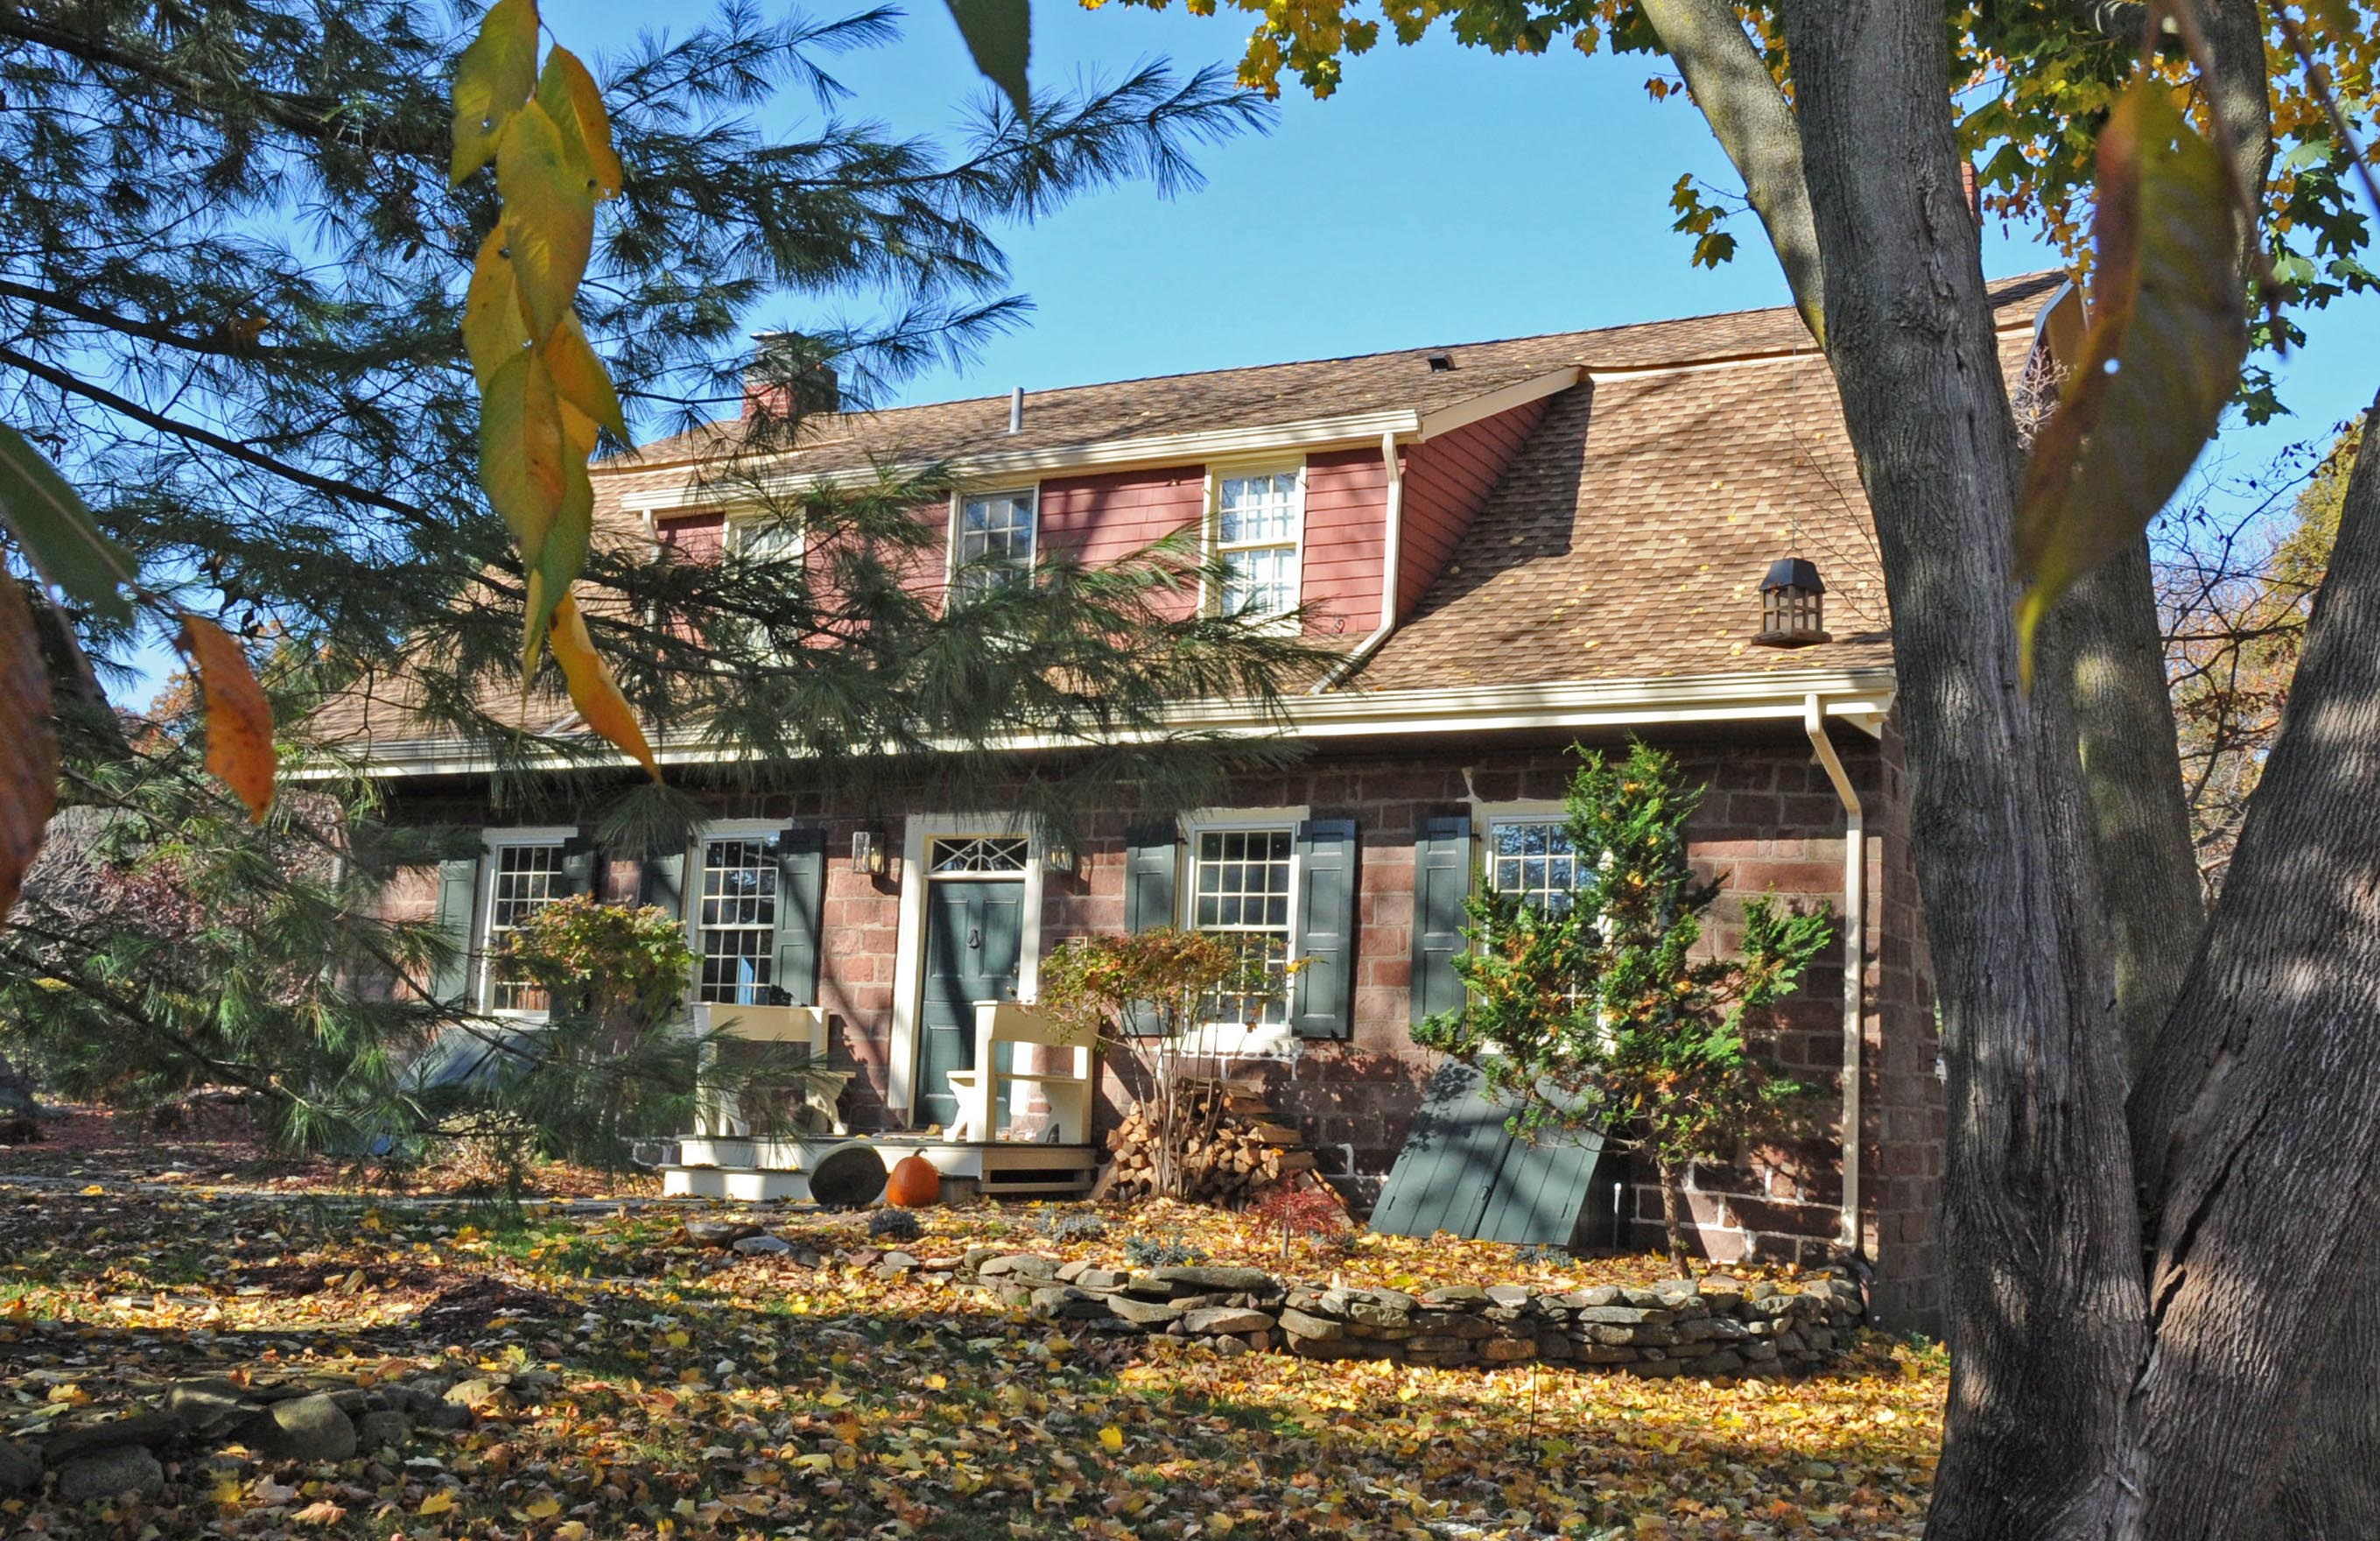 River Vale Nj Property Tax Calculation